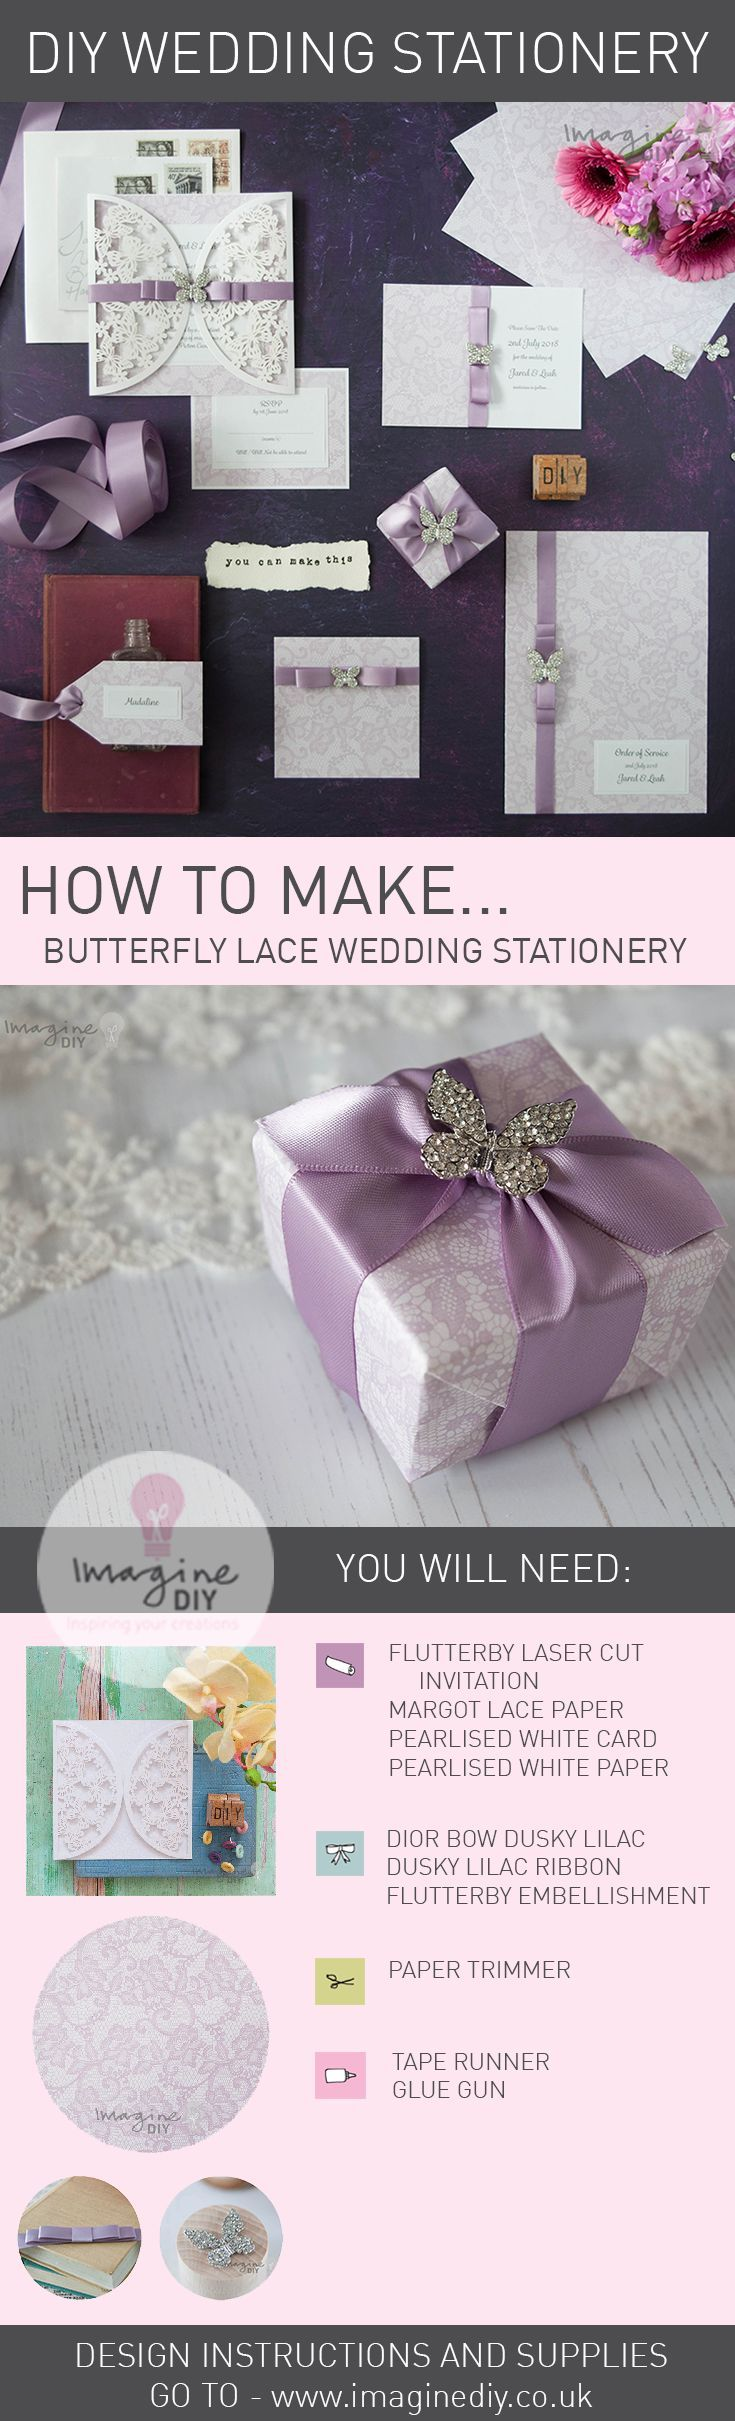 How to make pretty wedding stationery with butterflies and lace.  Dusky lilac wedding stationery.  DIY wedding stationery ideas.  Design guide and products available from Imagine DIY  #DIYweddingstationery #DIYweddinginvitations #DIYweddinginvites #purplewedding #lilacwedding #butterlywedding #laceweddingstationery #imaginediy #diyweddingideas #diywedding #summerwedding